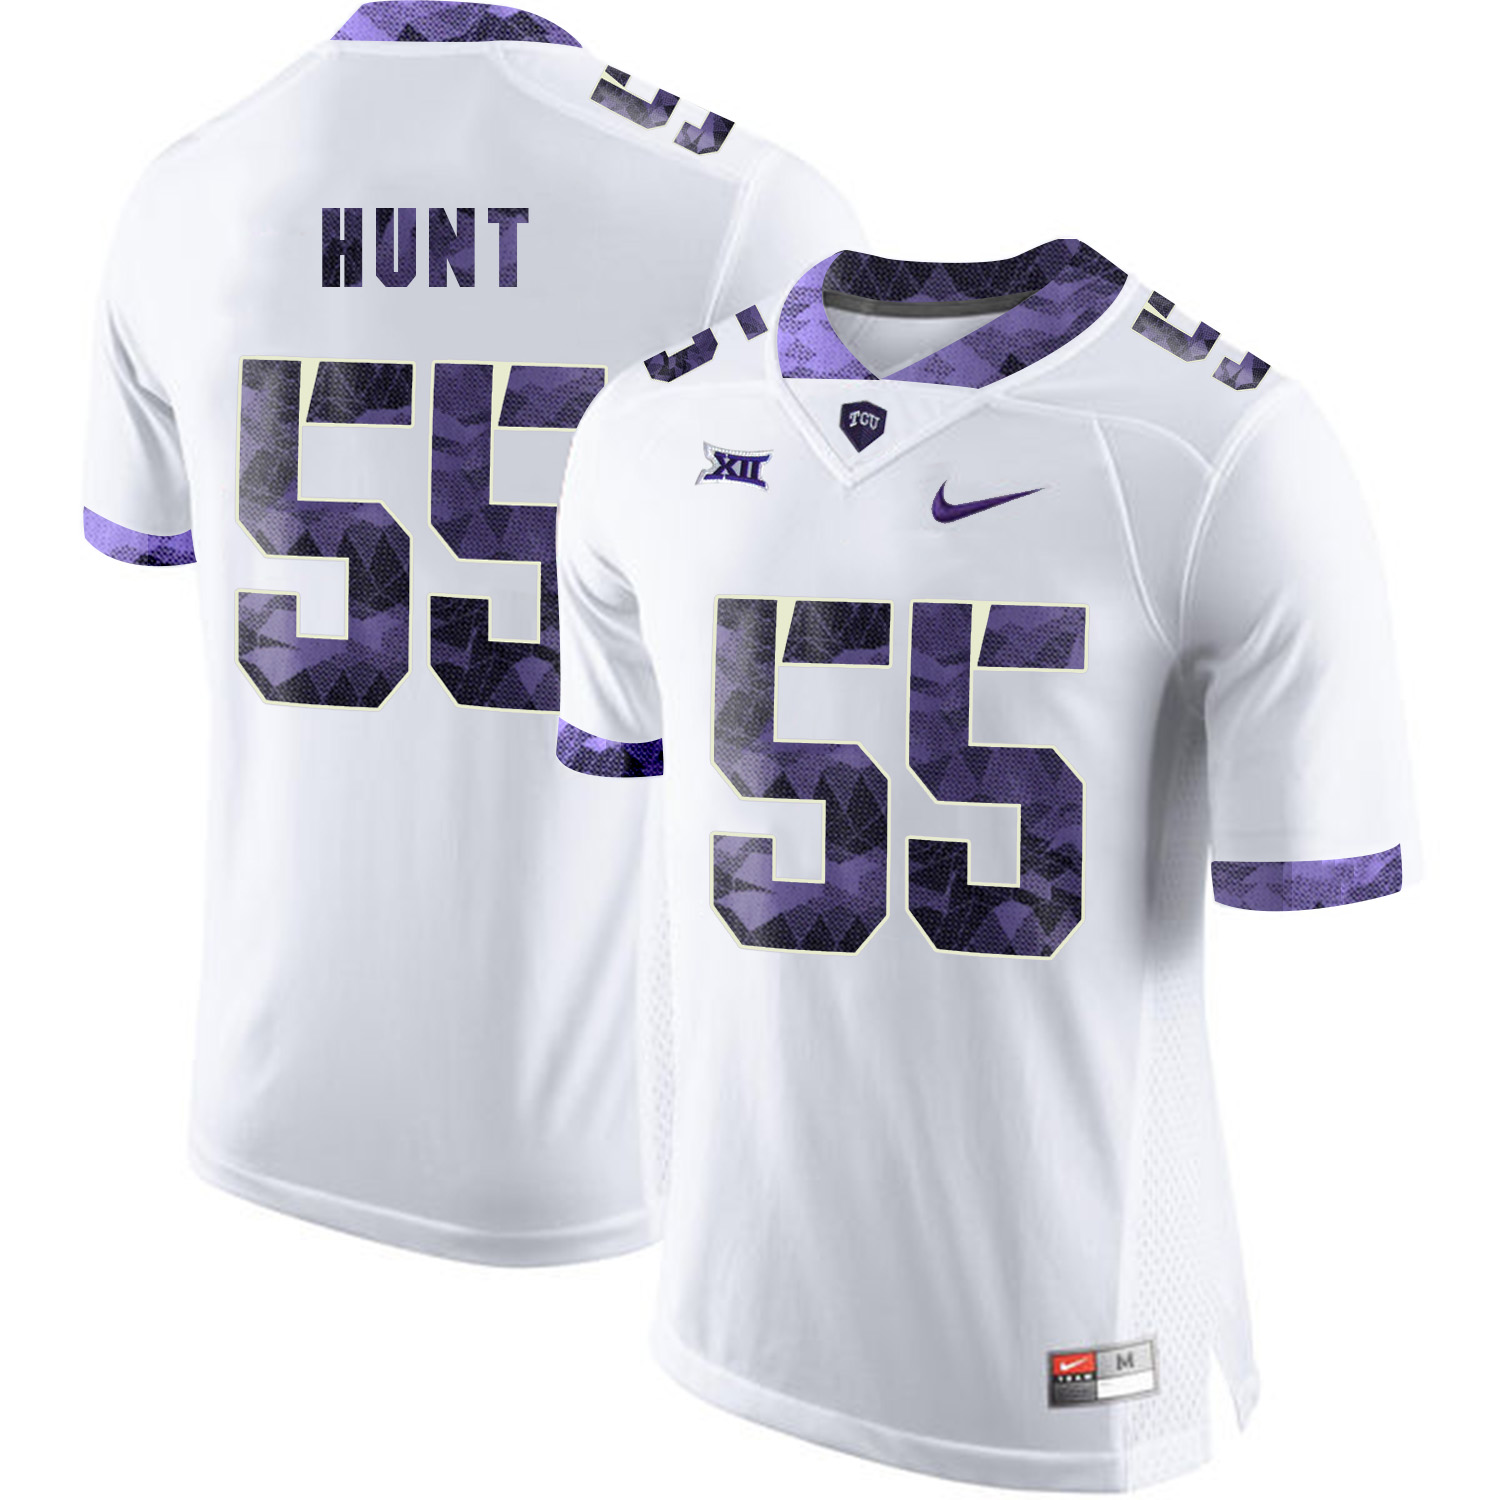 TCU Horned Frogs 55 Joey Hunt White Print College Football Limited Jersey